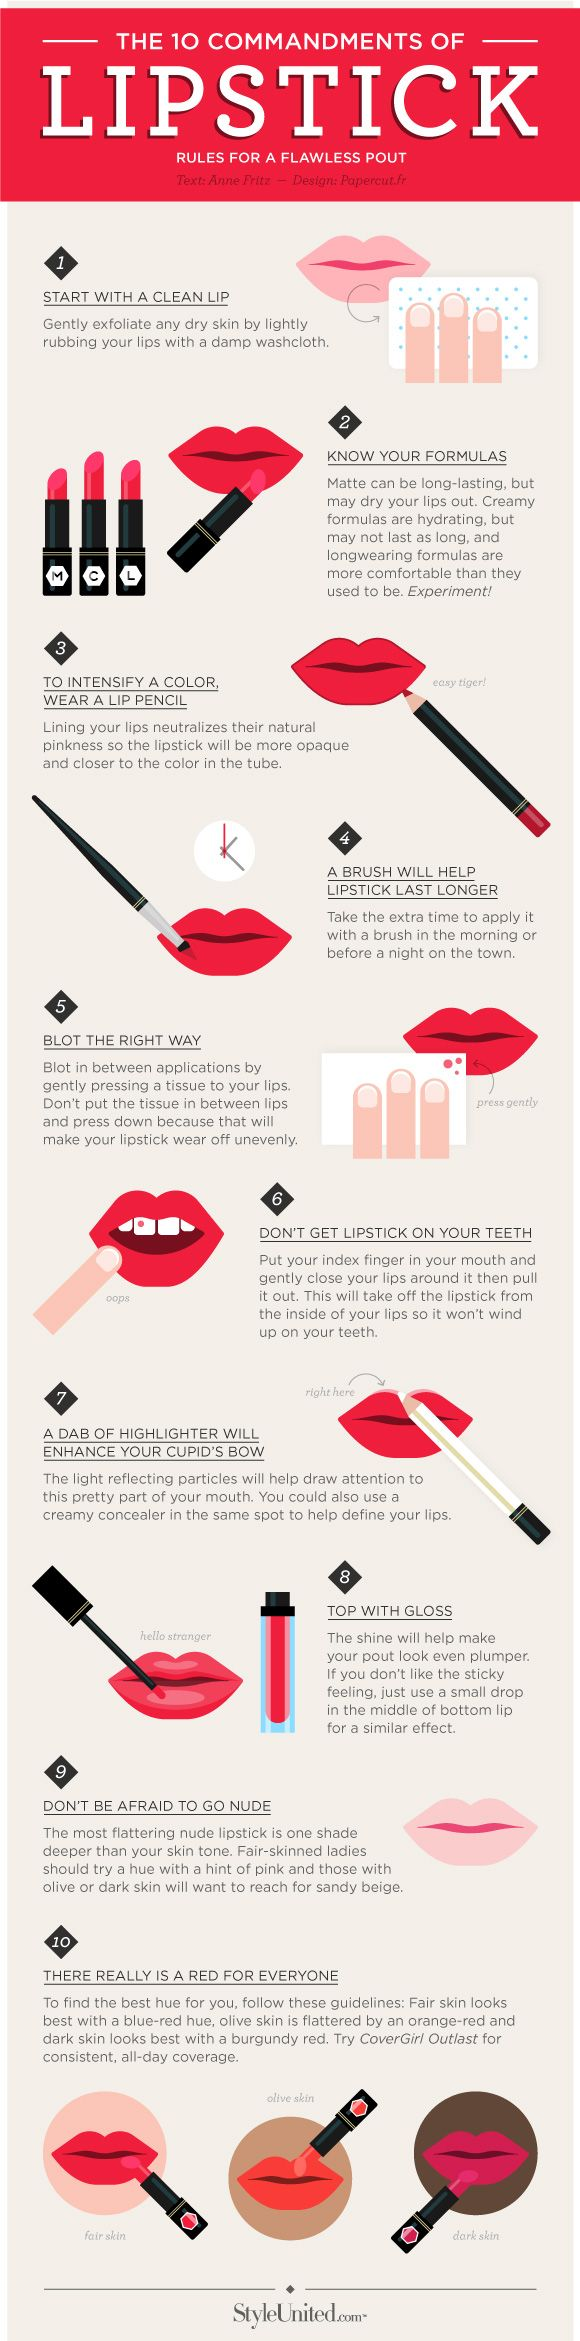 10 Commandments of Lipstick